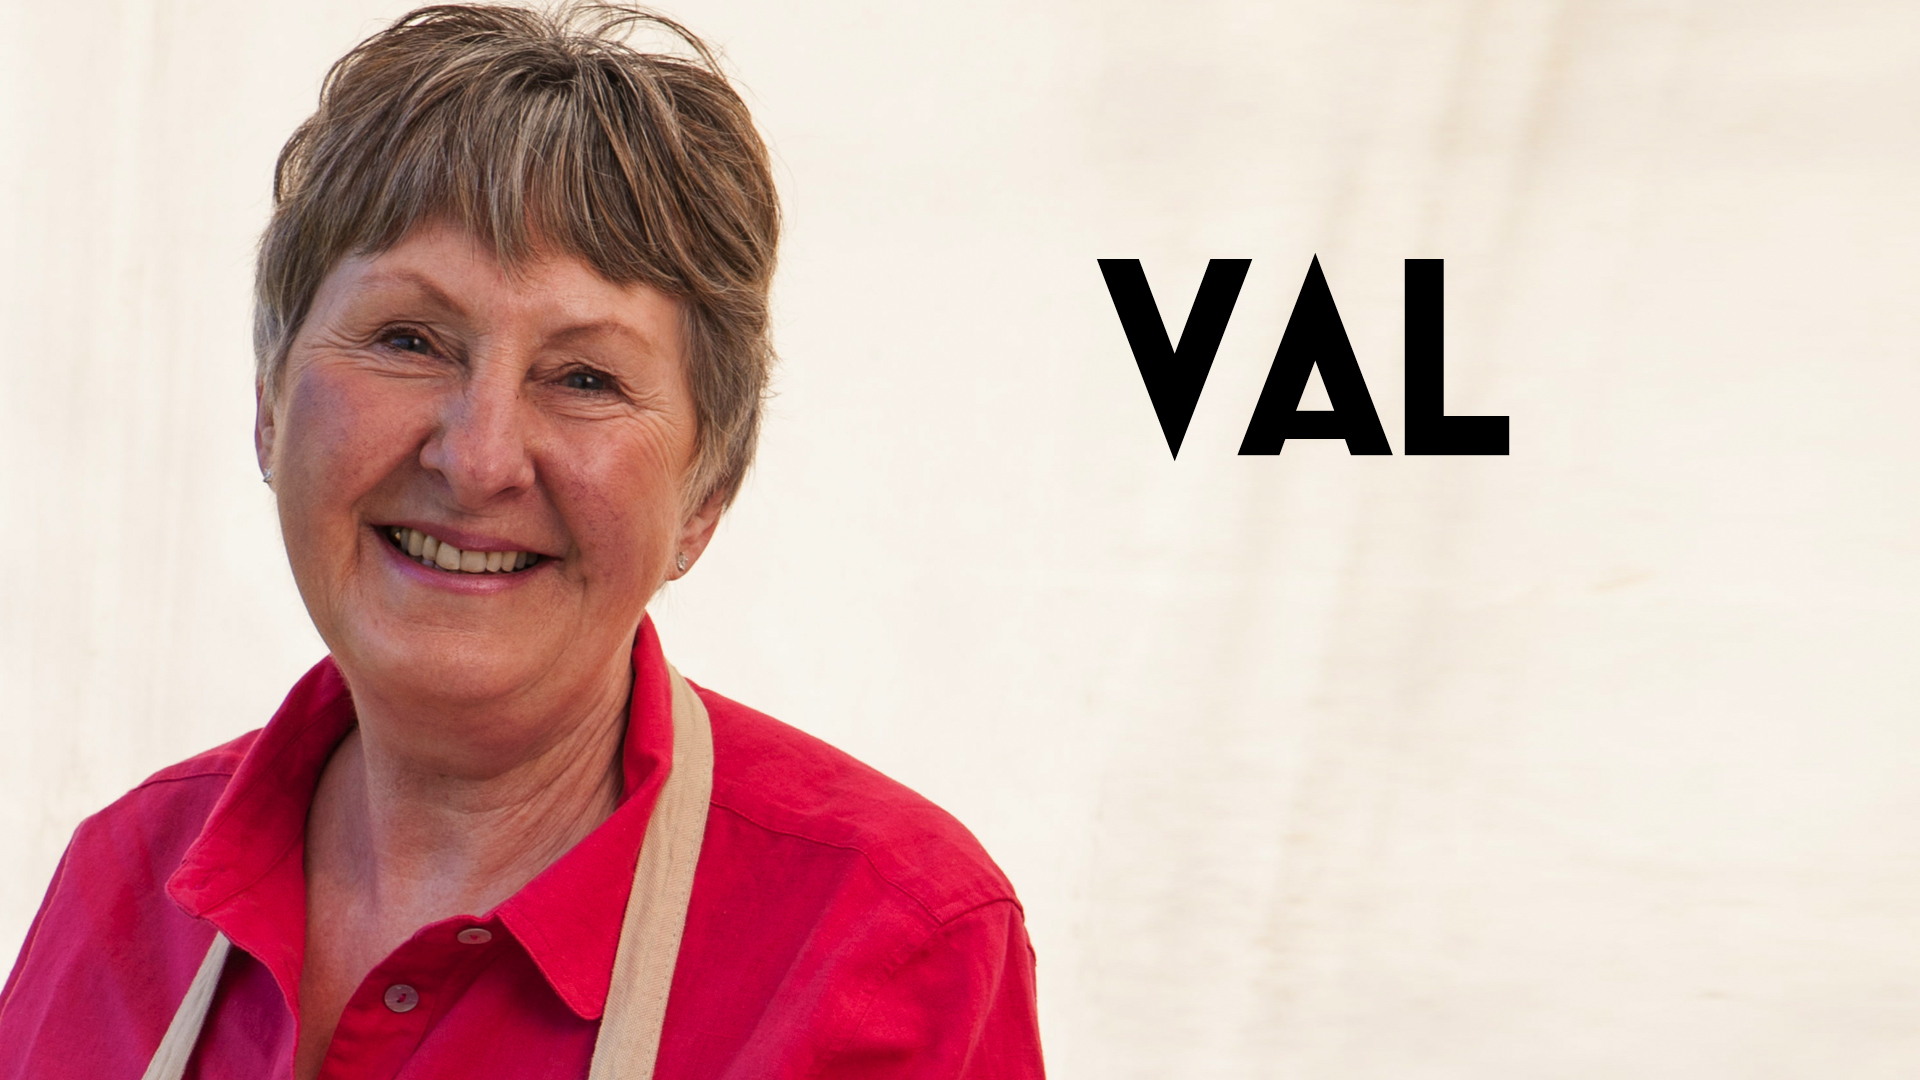 Great-British-Baking-Show-Bakers-Val